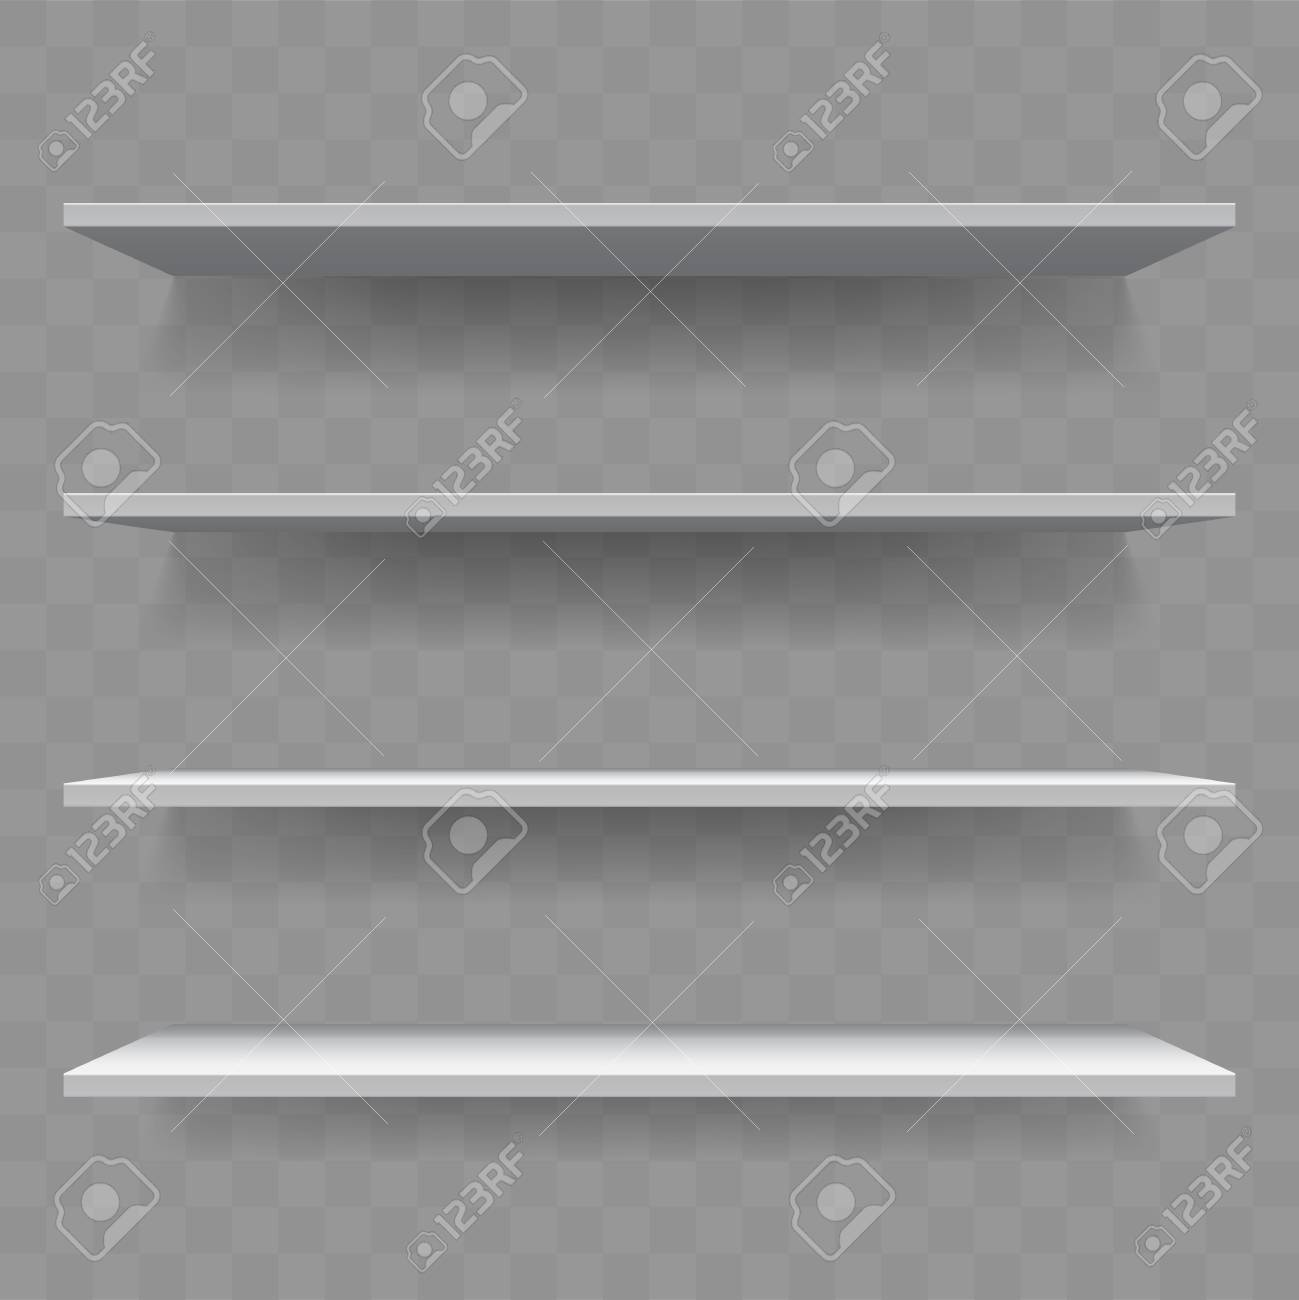 Shelf Or Bookshelf Of White Wood On Wall Transparent Background With Shadow Isolated 3D Realistic